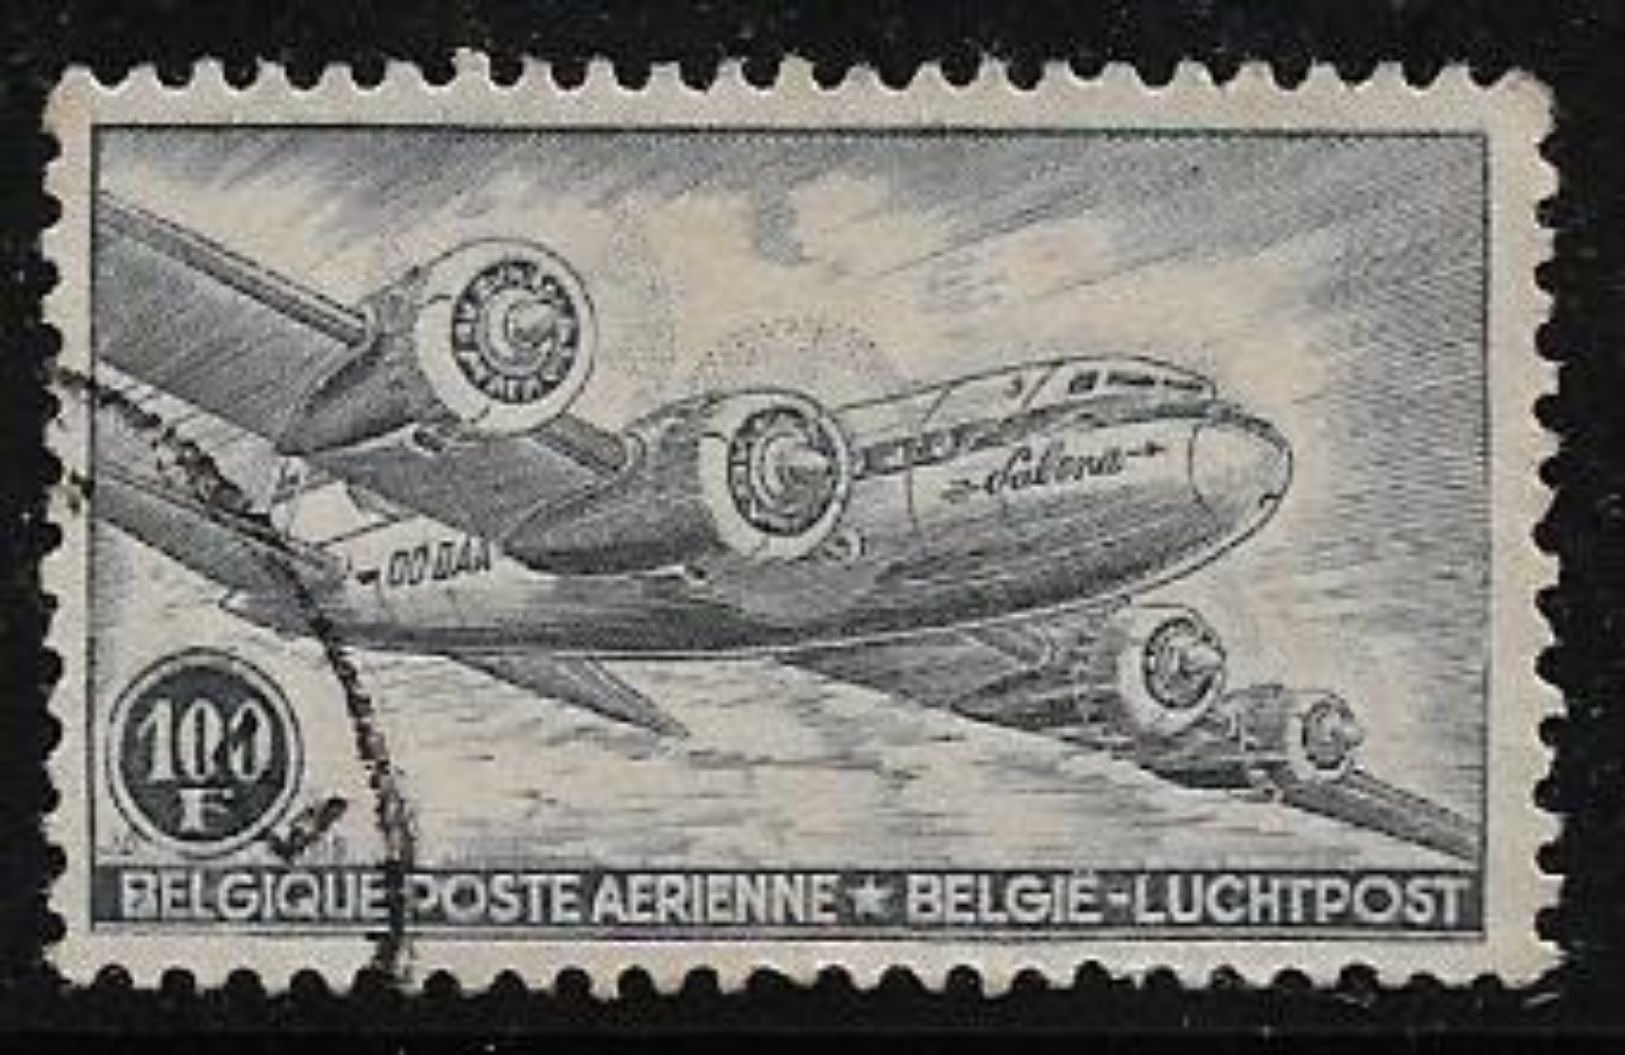 Belgium Luchtpost Airmail Airplane Aviation Used Stamp # AR:110 - Airmail